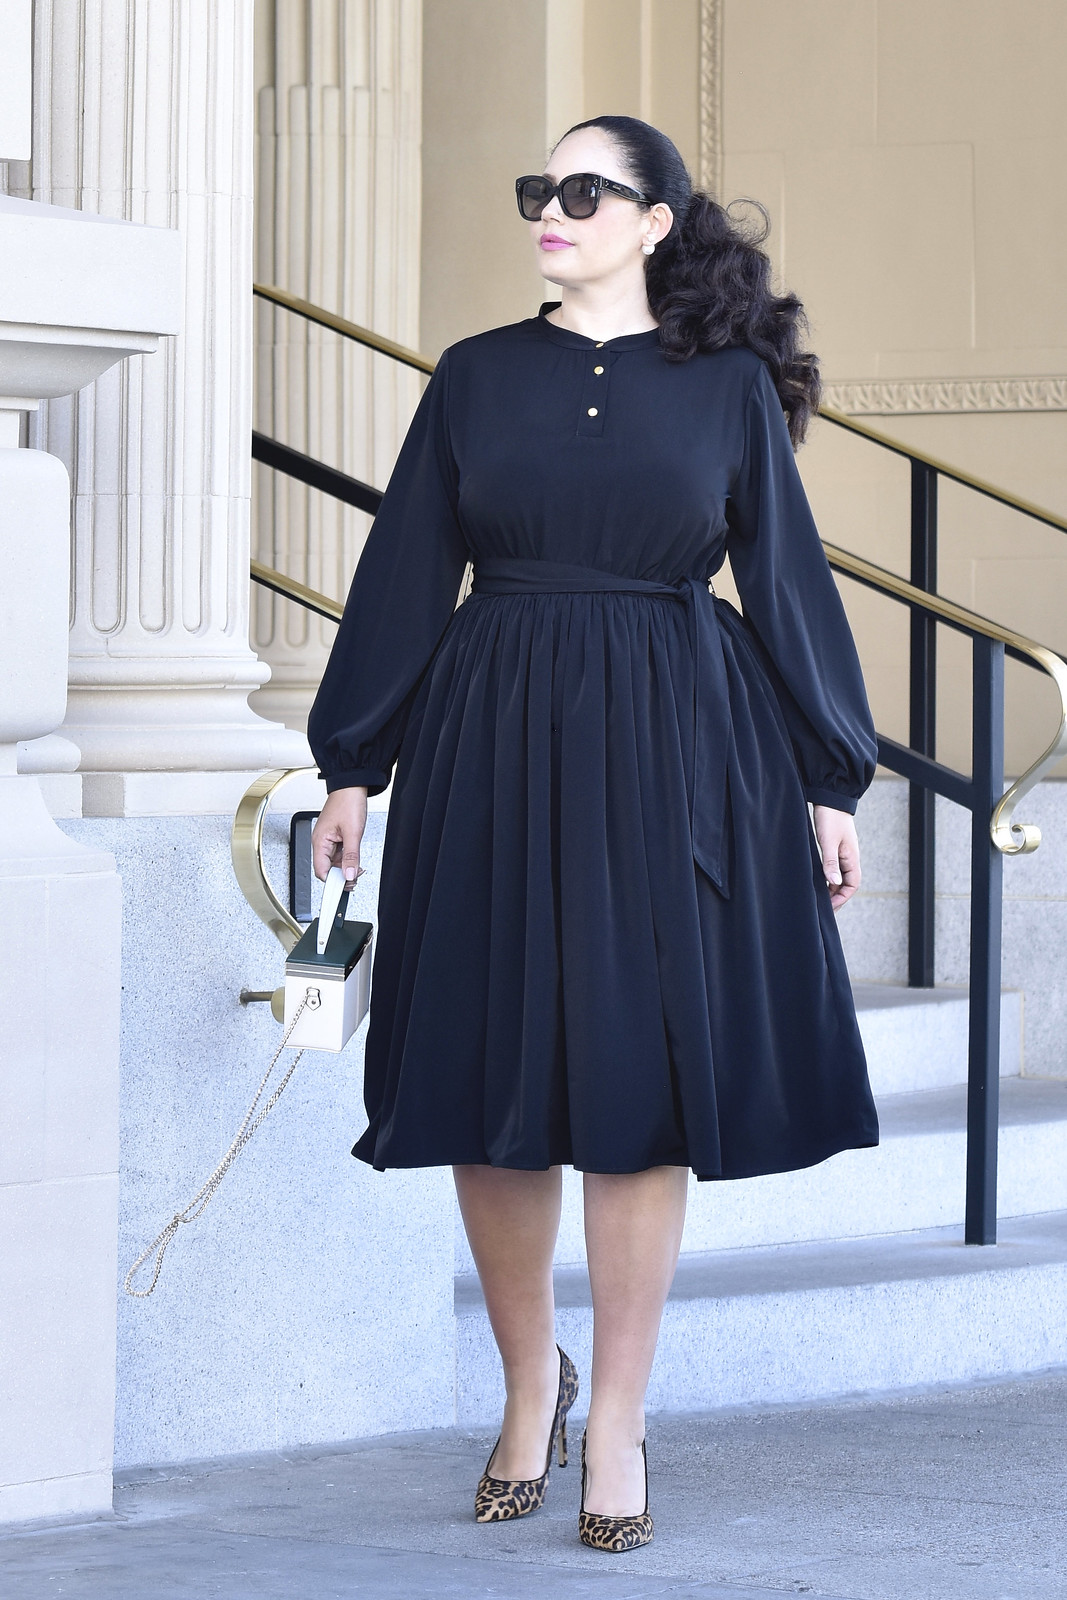 Gold Button Shirtdress From Girl With Curves Collection #black #plussize #dress #fashion #style #curvy #long #sleeve #modest